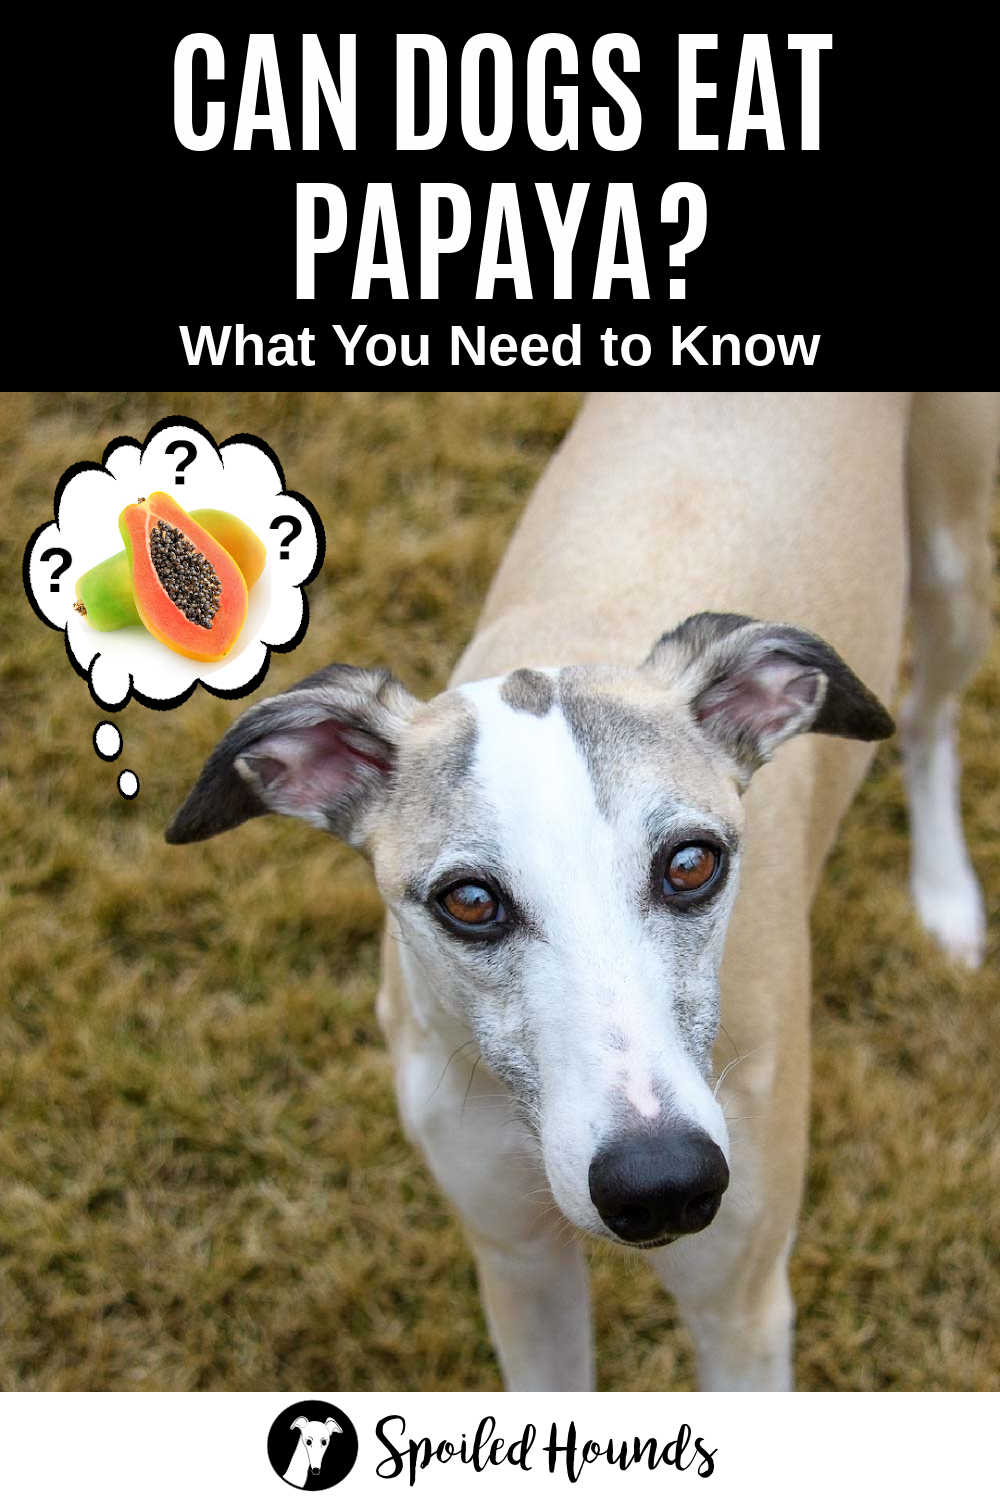 whippet dog wondering about papaya